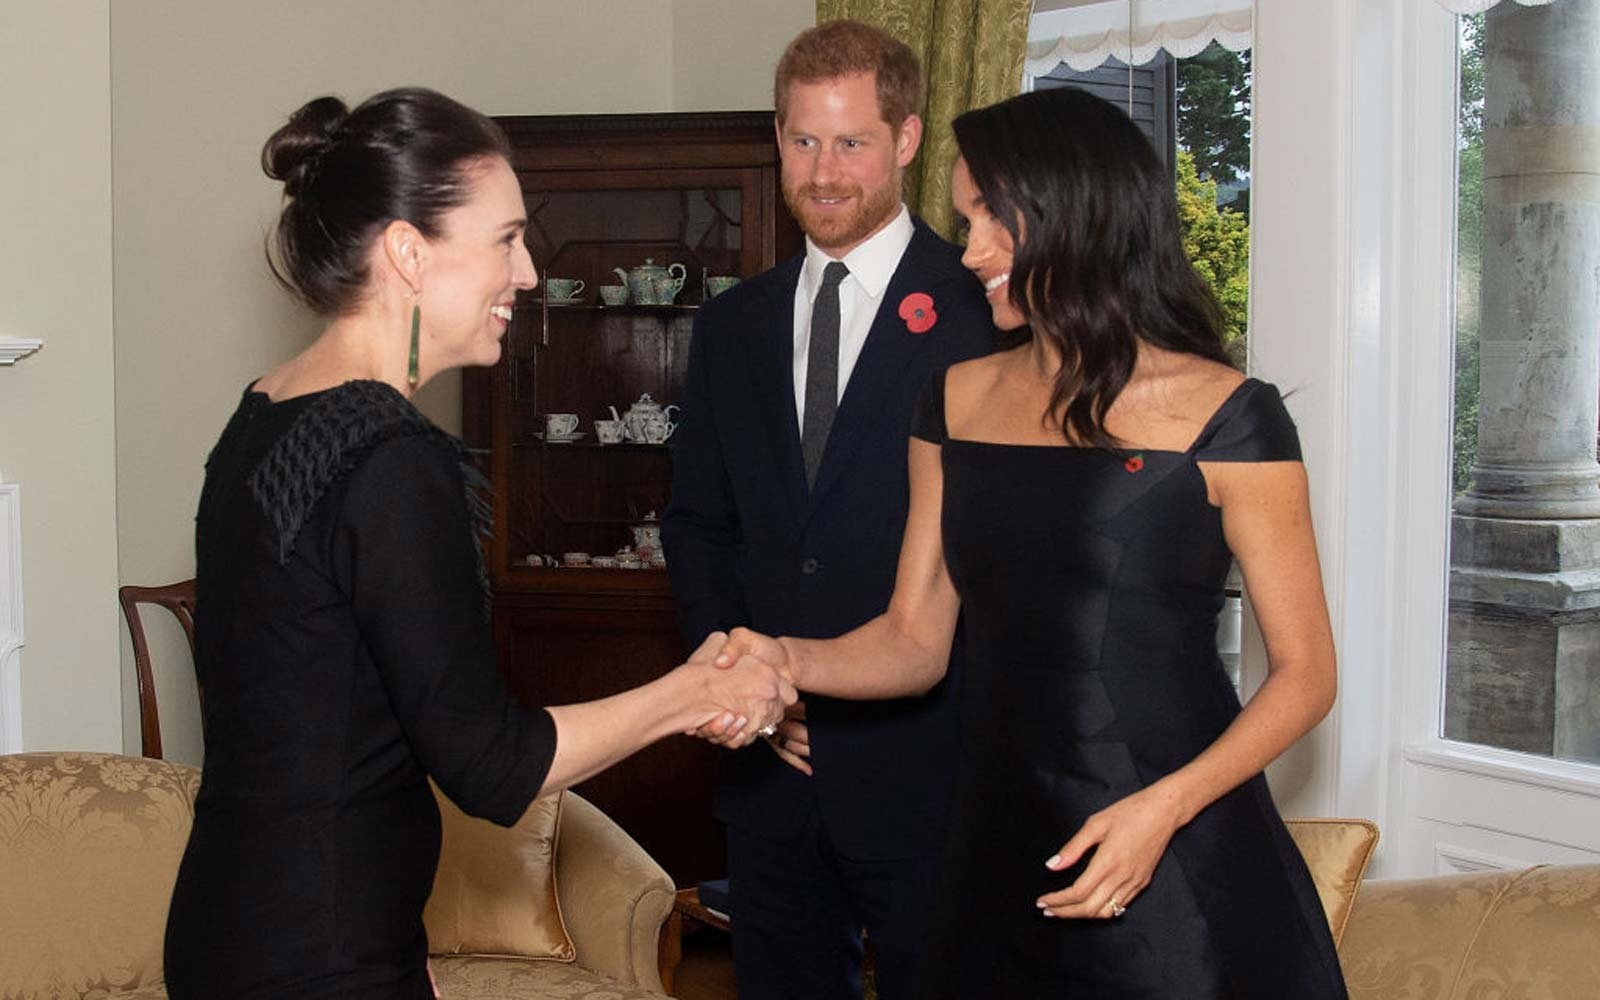 Britain's Prince Harry and his wife Meghan, the Duchess of Sussex, meet with New Zealand's Prime Minister Jacinda Ardern